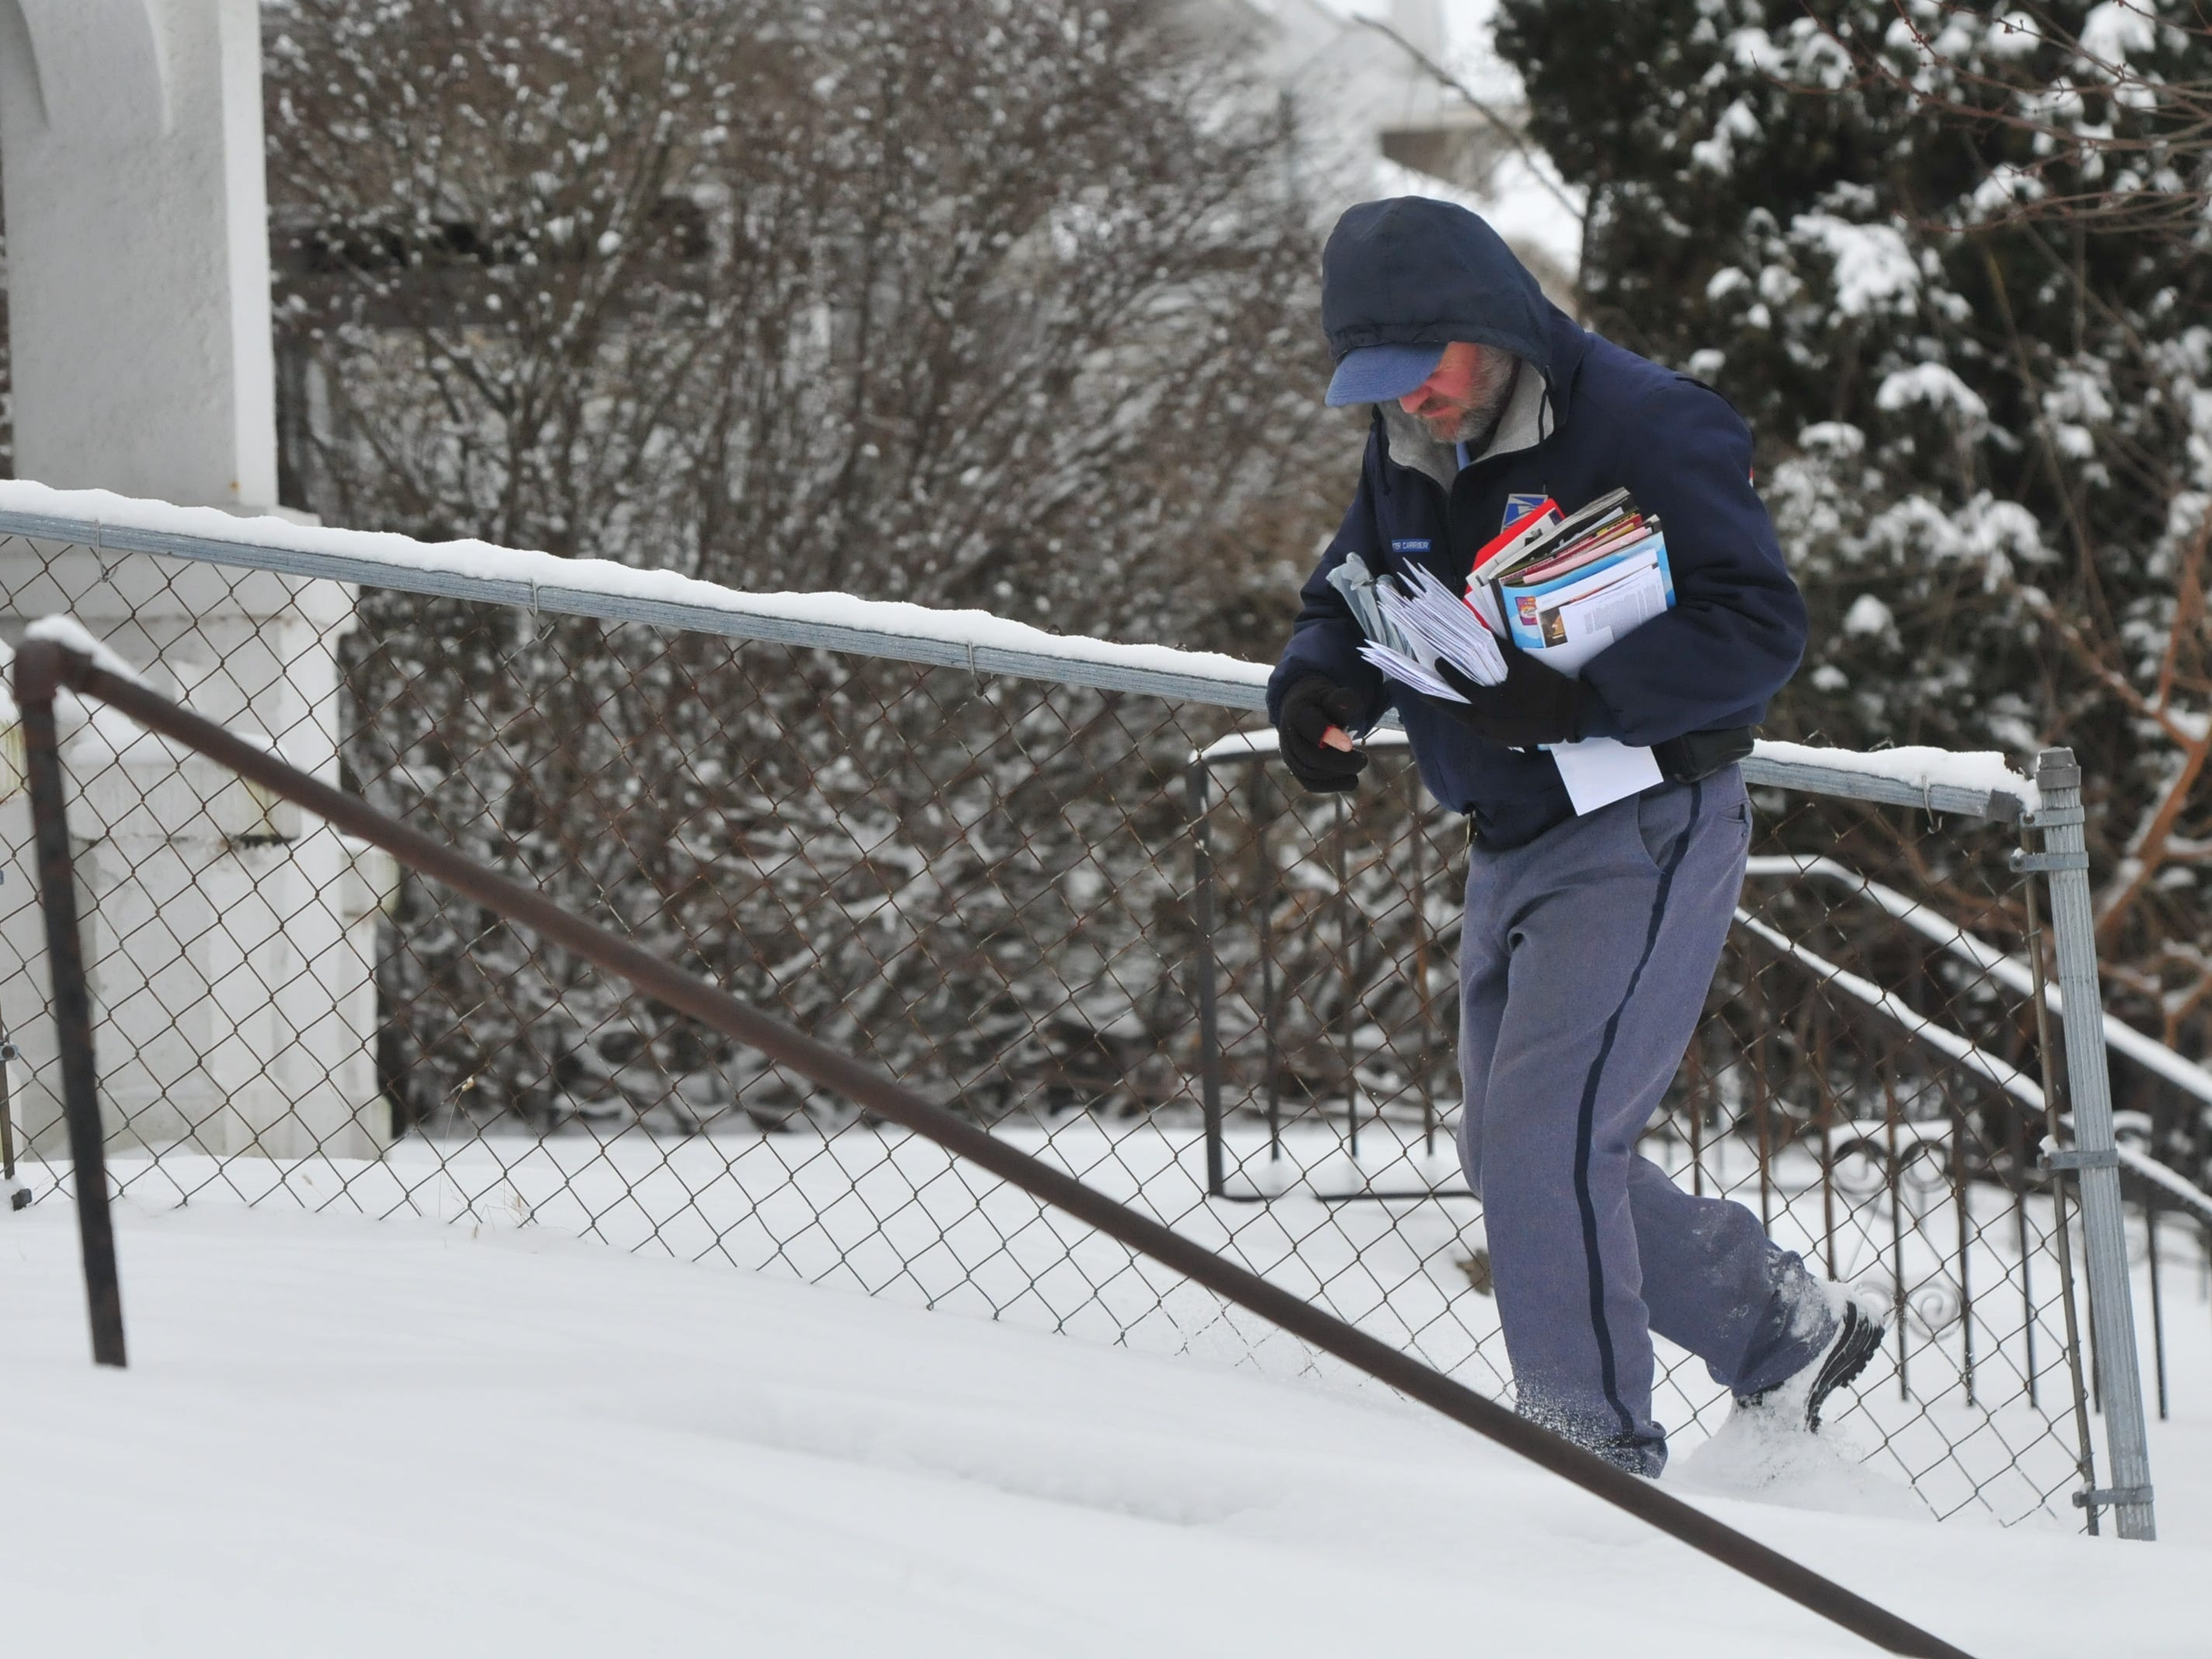 After two days without mail delivery because of dangerous cold, mail carriers were back on their routes Friday despite the overnight snowstorm.